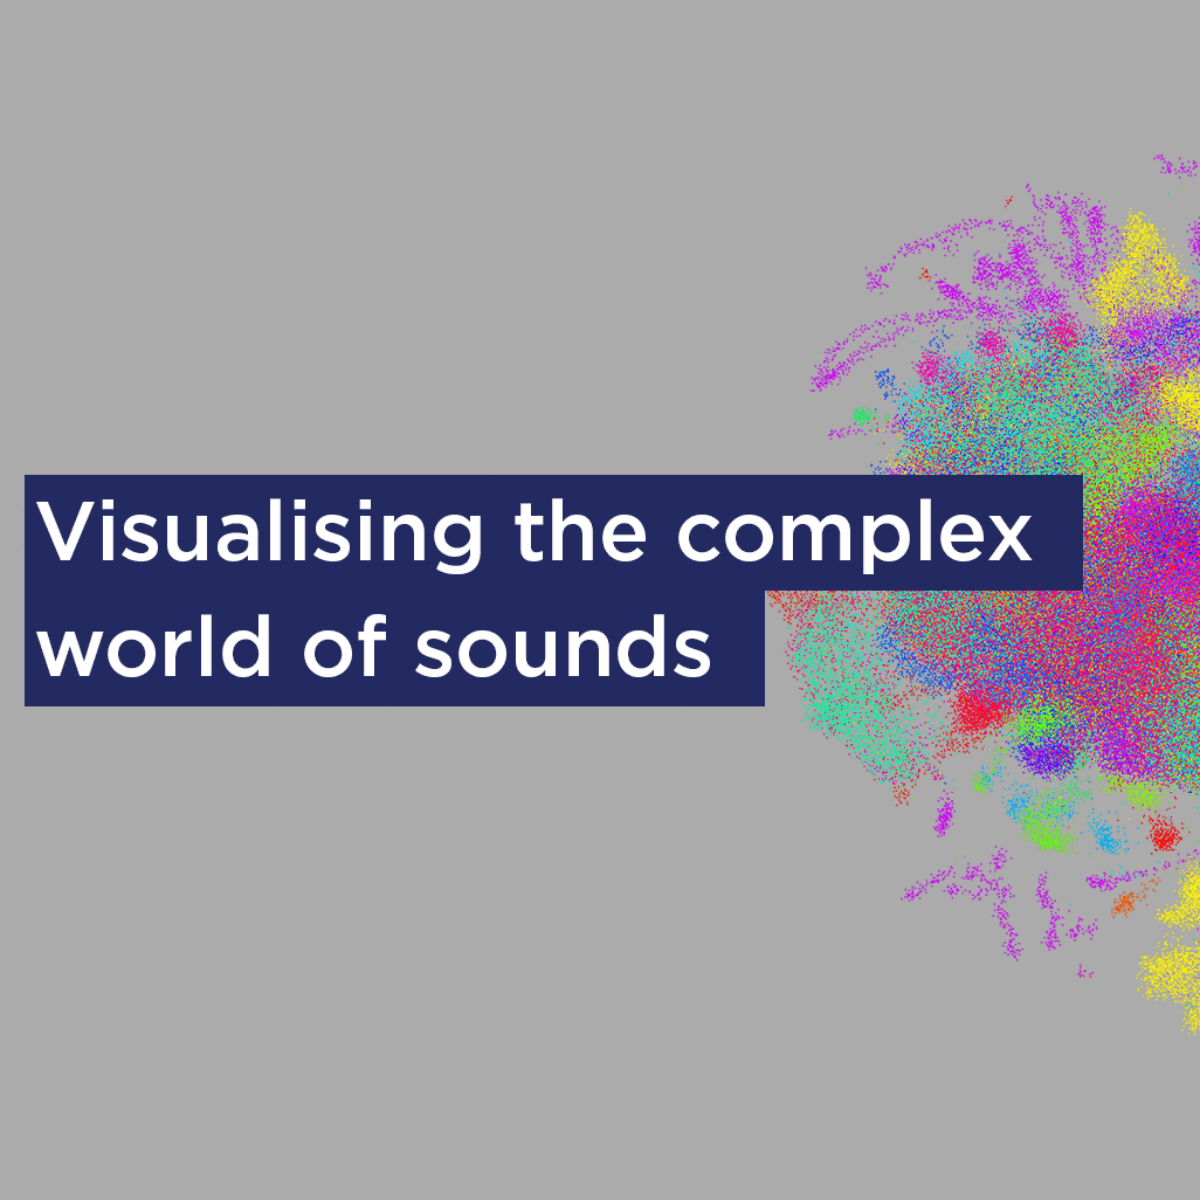 Visualising the complex world of sounds